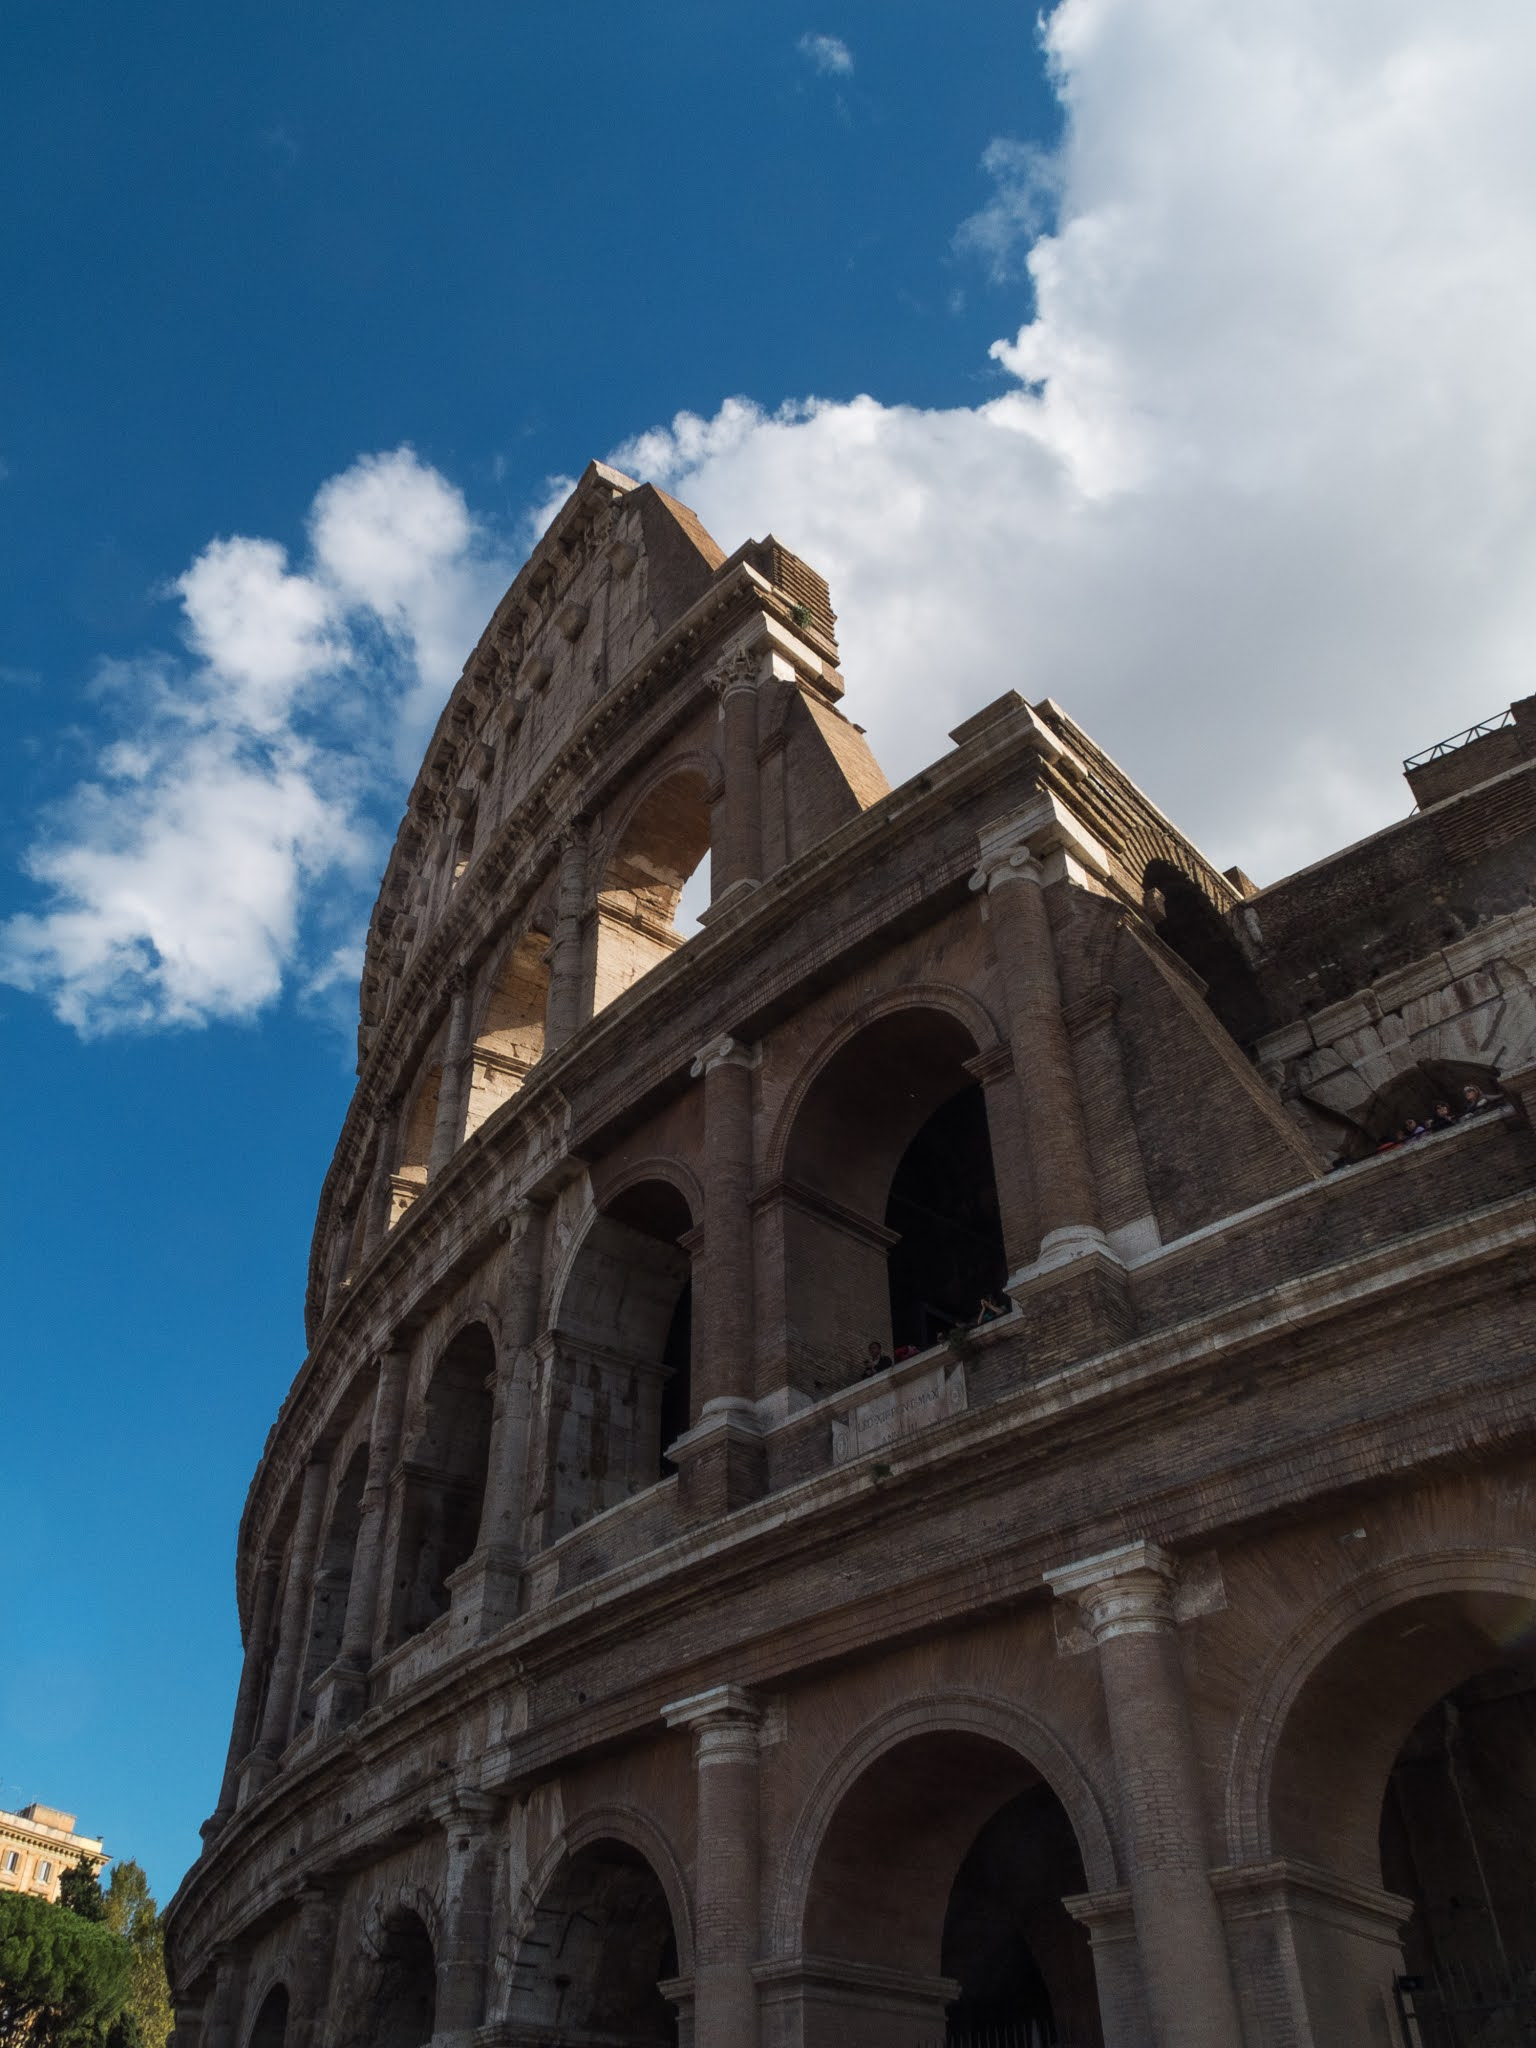 Looking up at the Colosseum and blue sky with clouds